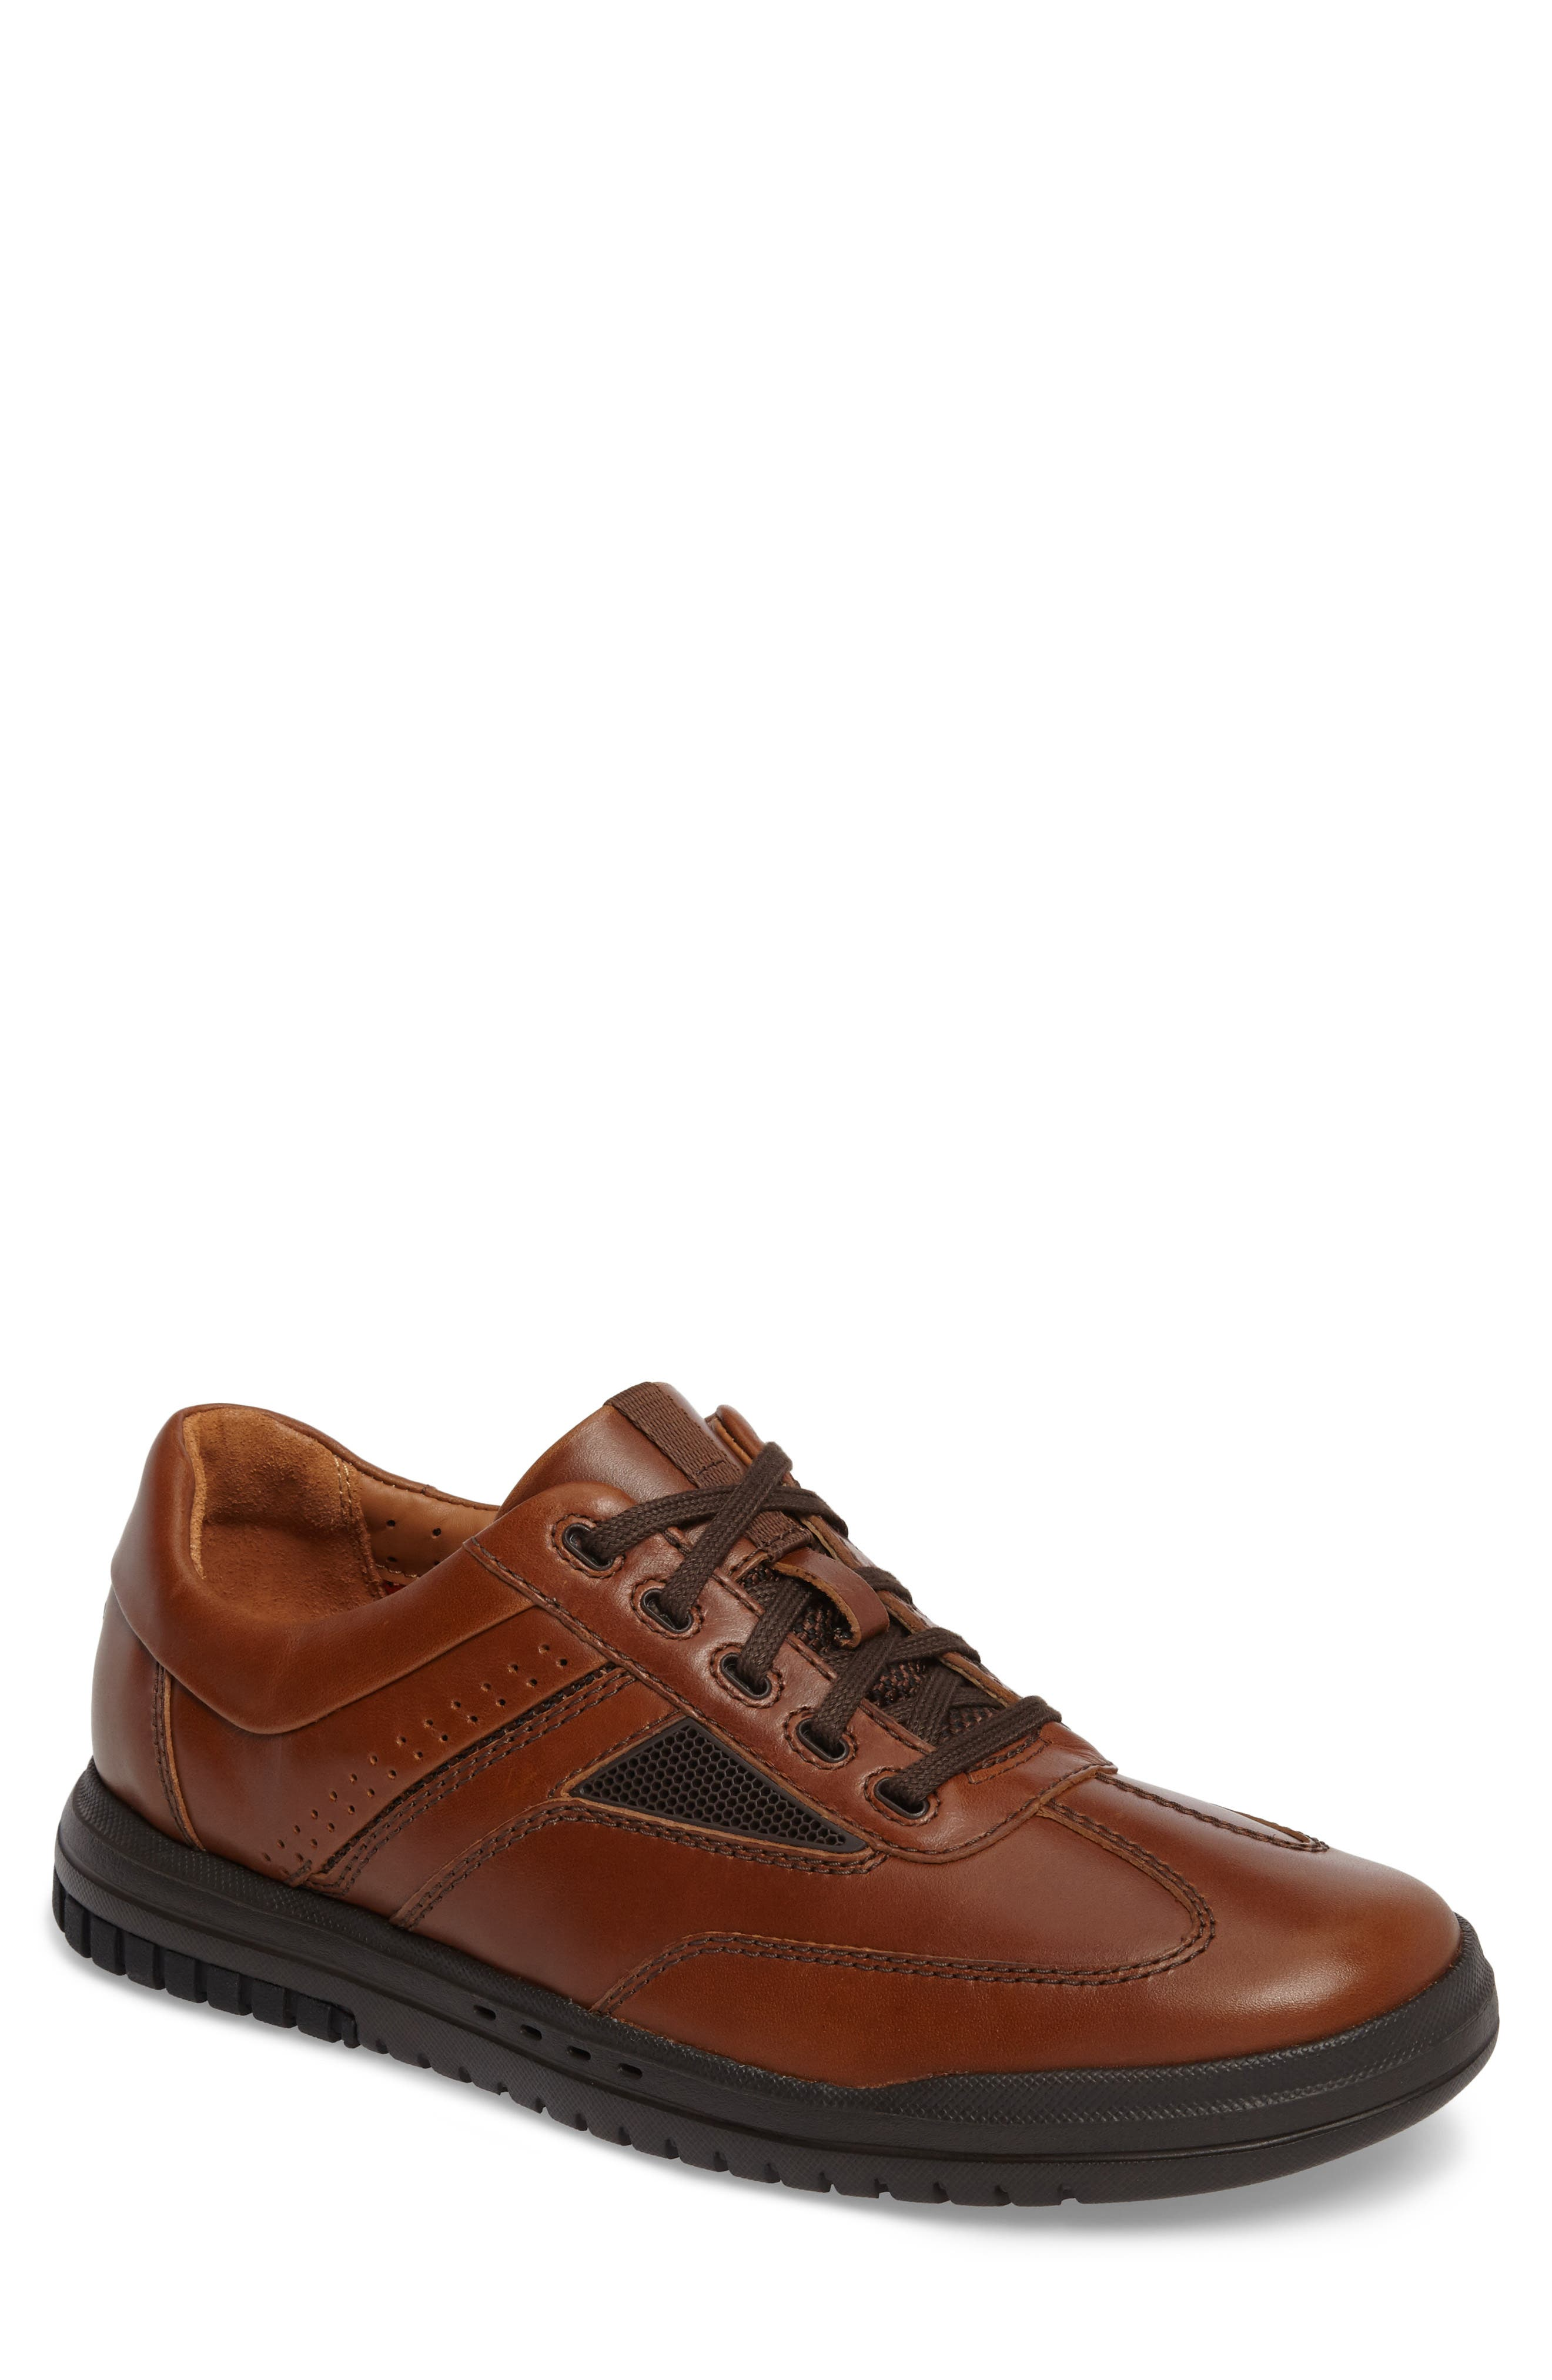 Un.Rhombus Fly Sneaker,                             Main thumbnail 1, color,                             Tan Leather